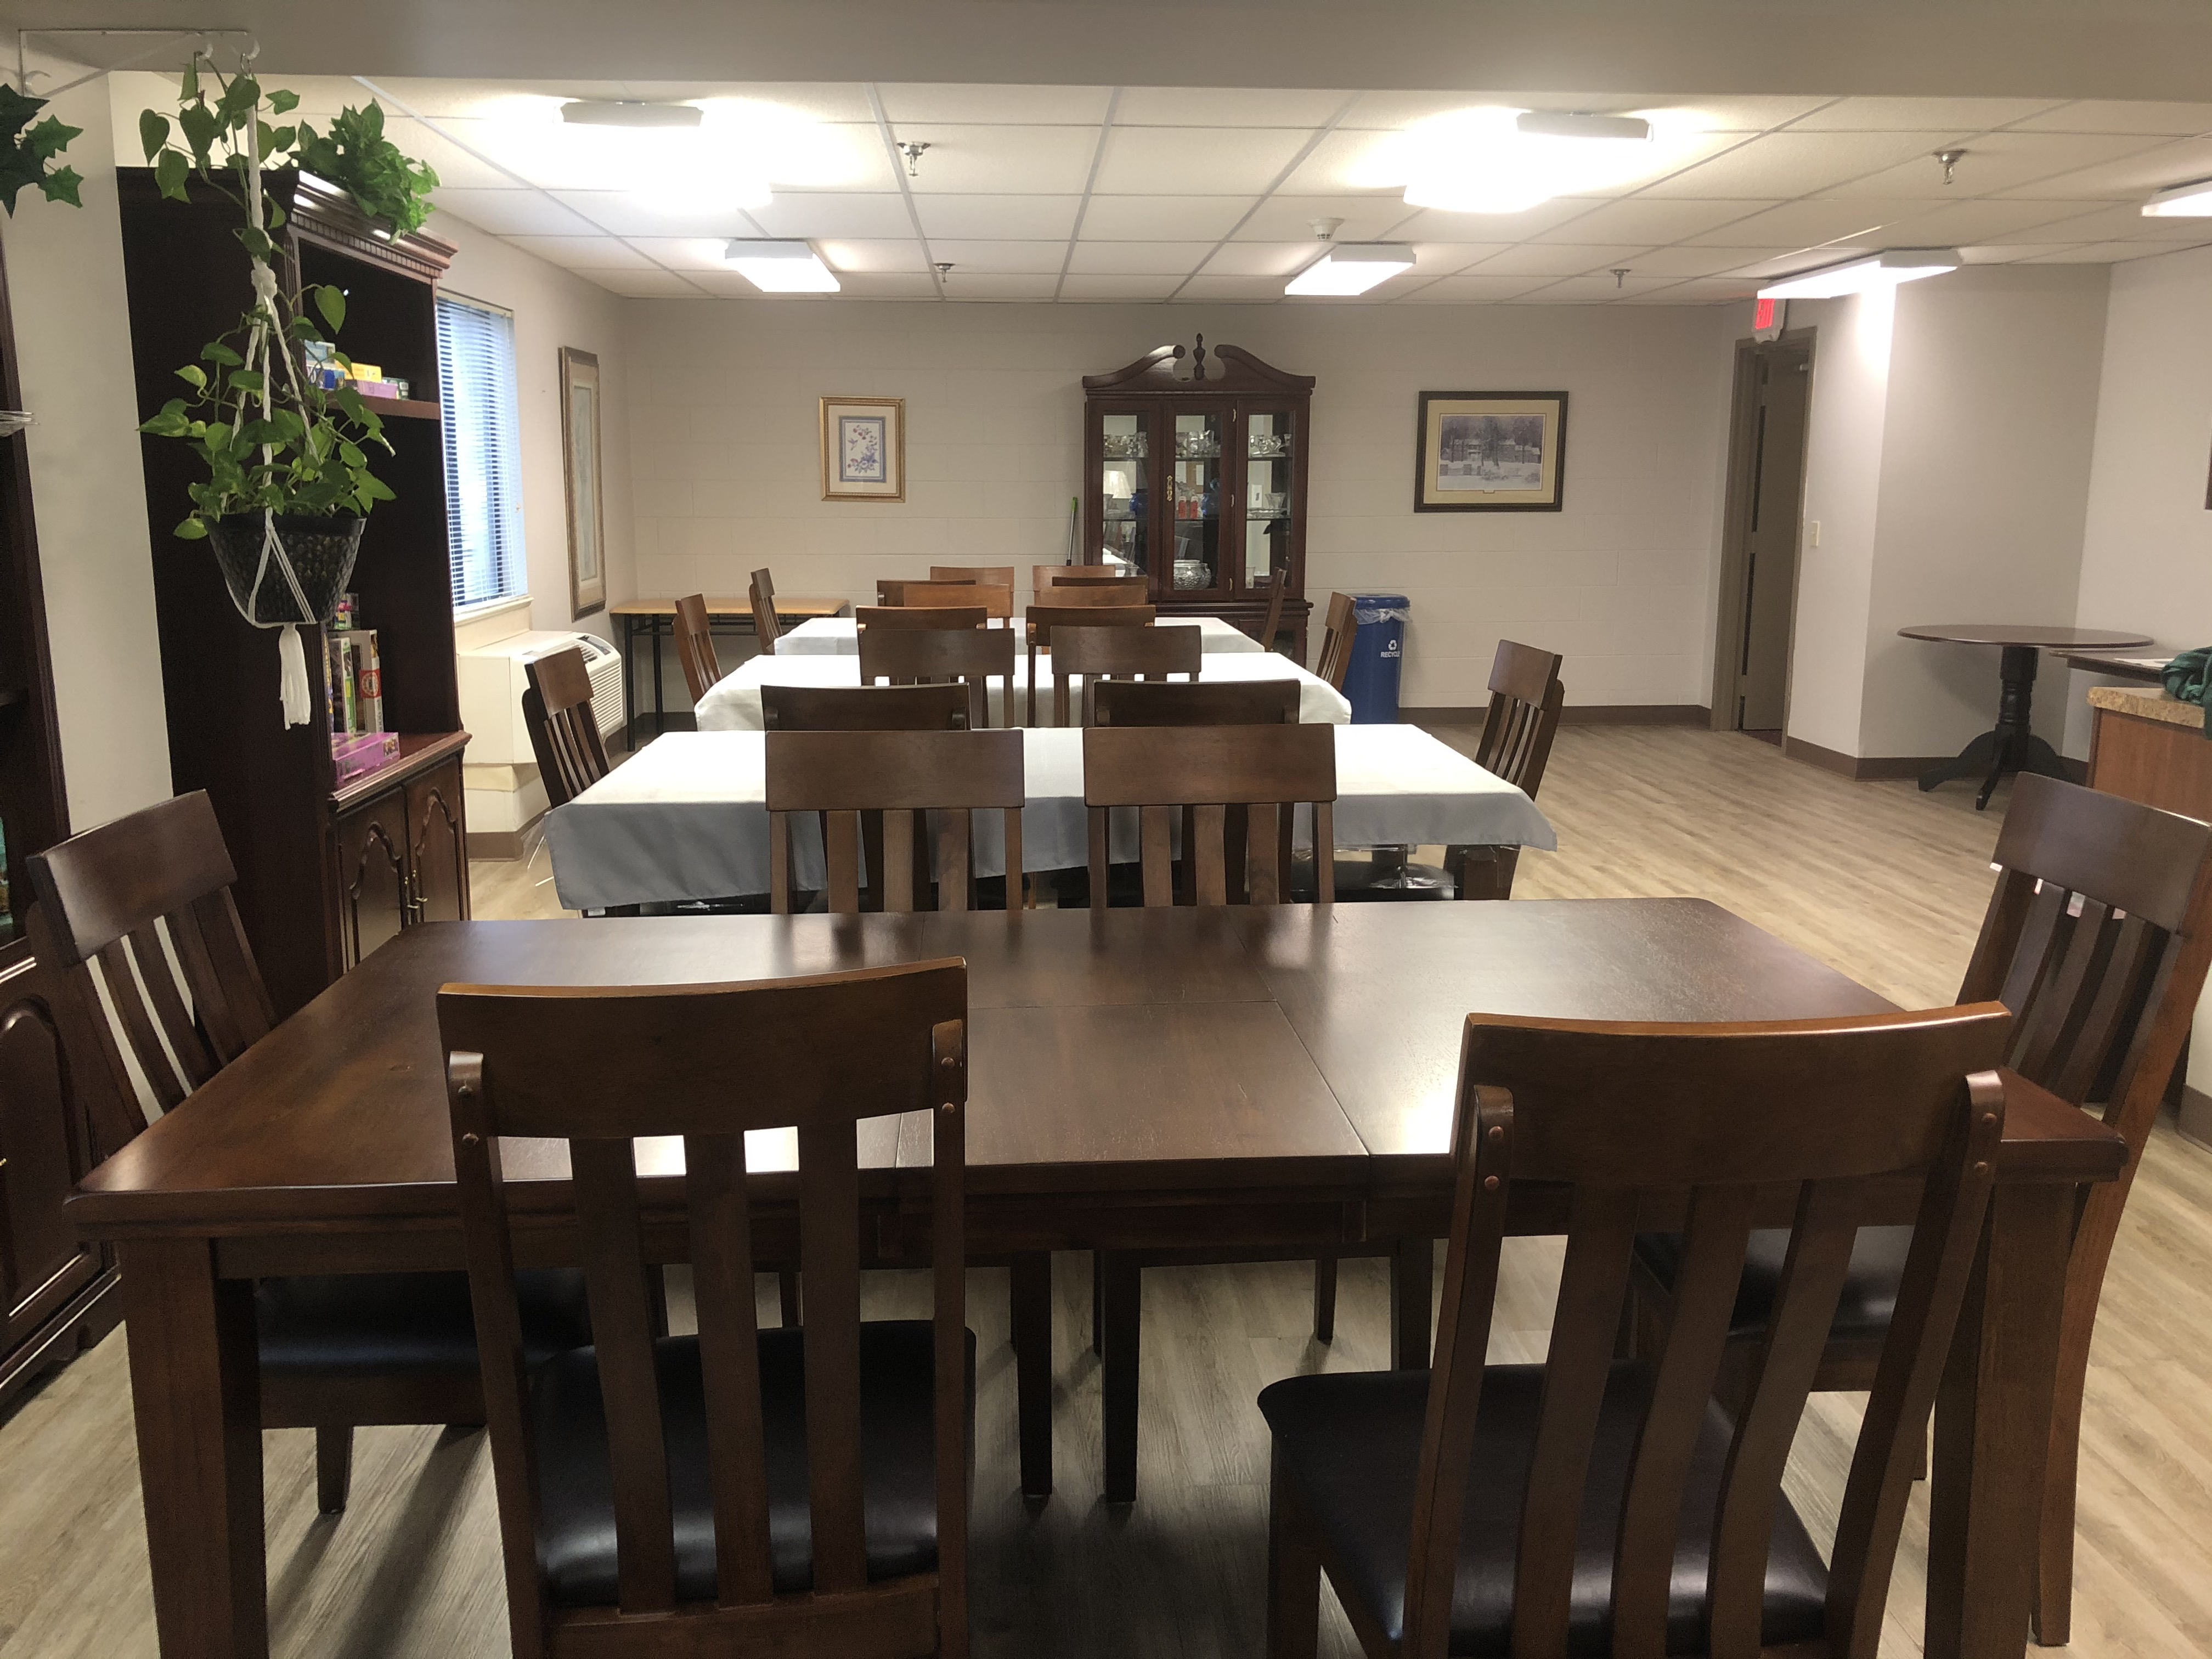 Crestwood - Community Room Tables